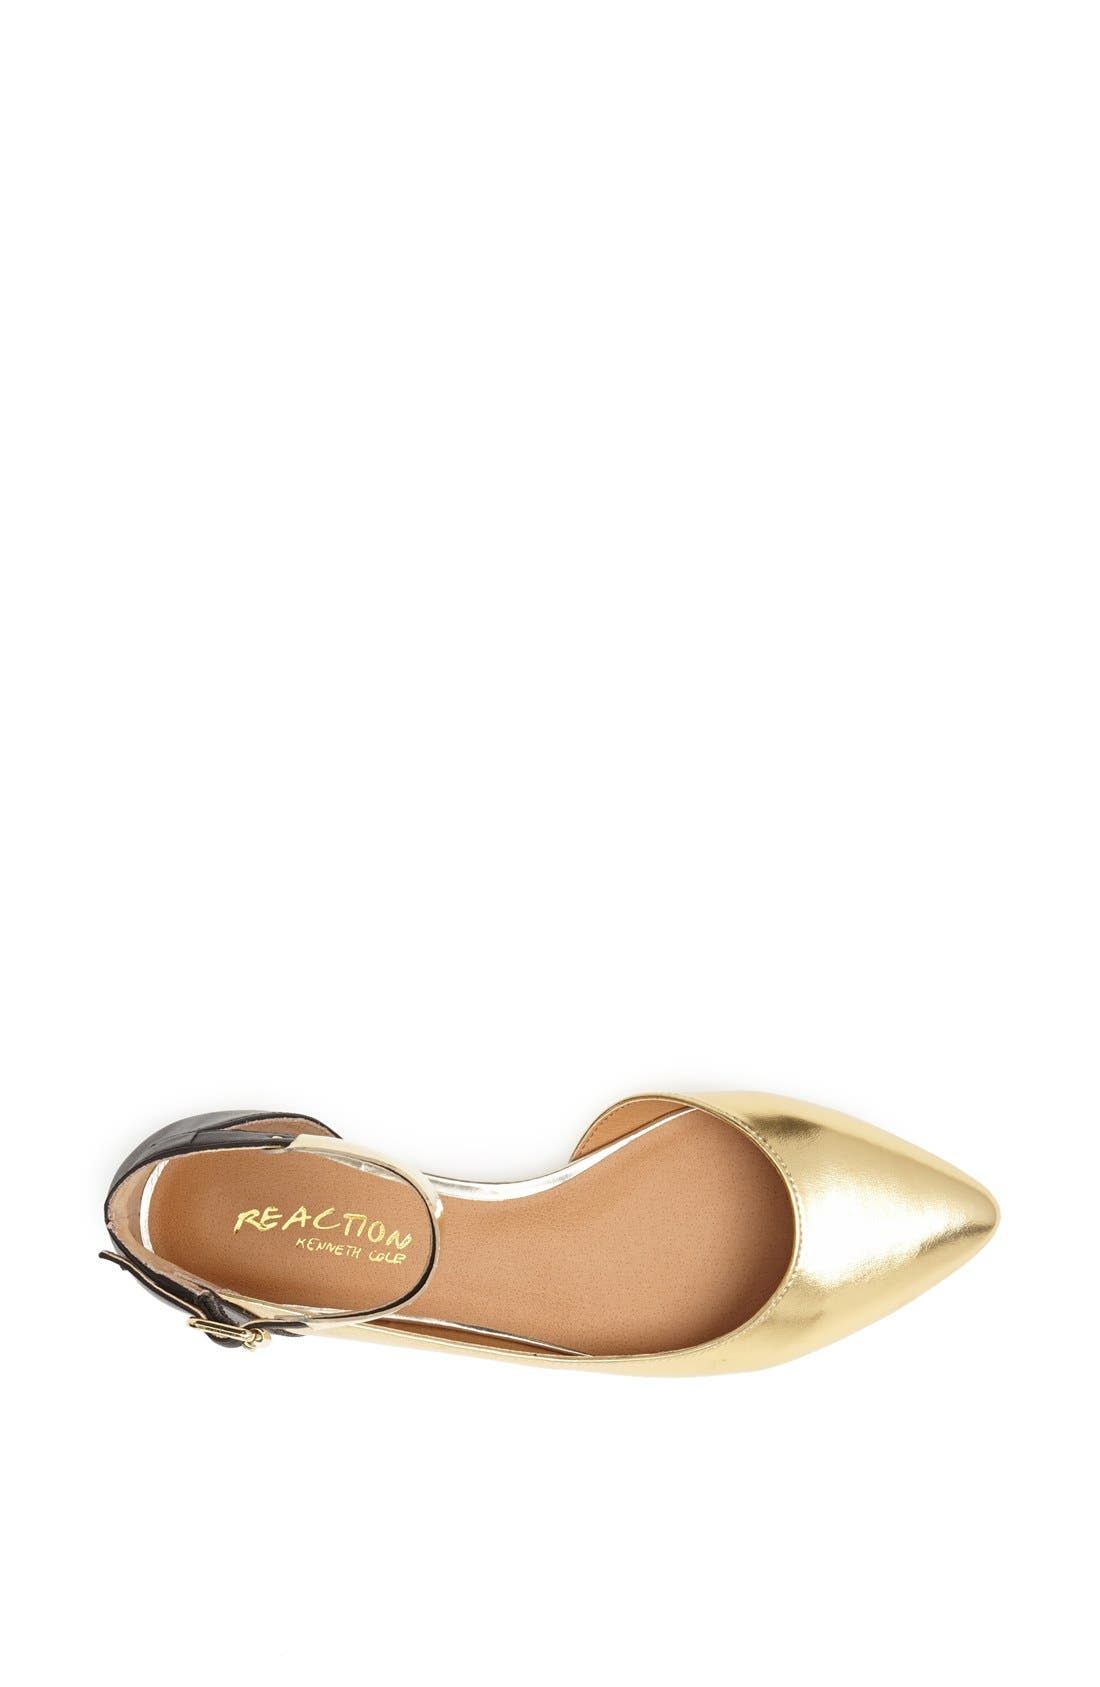 Alternate Image 3  - Kenneth Cole Reaction 'Pose Off 2' Cuff Ankle Strap Half d'Orsay Sandal